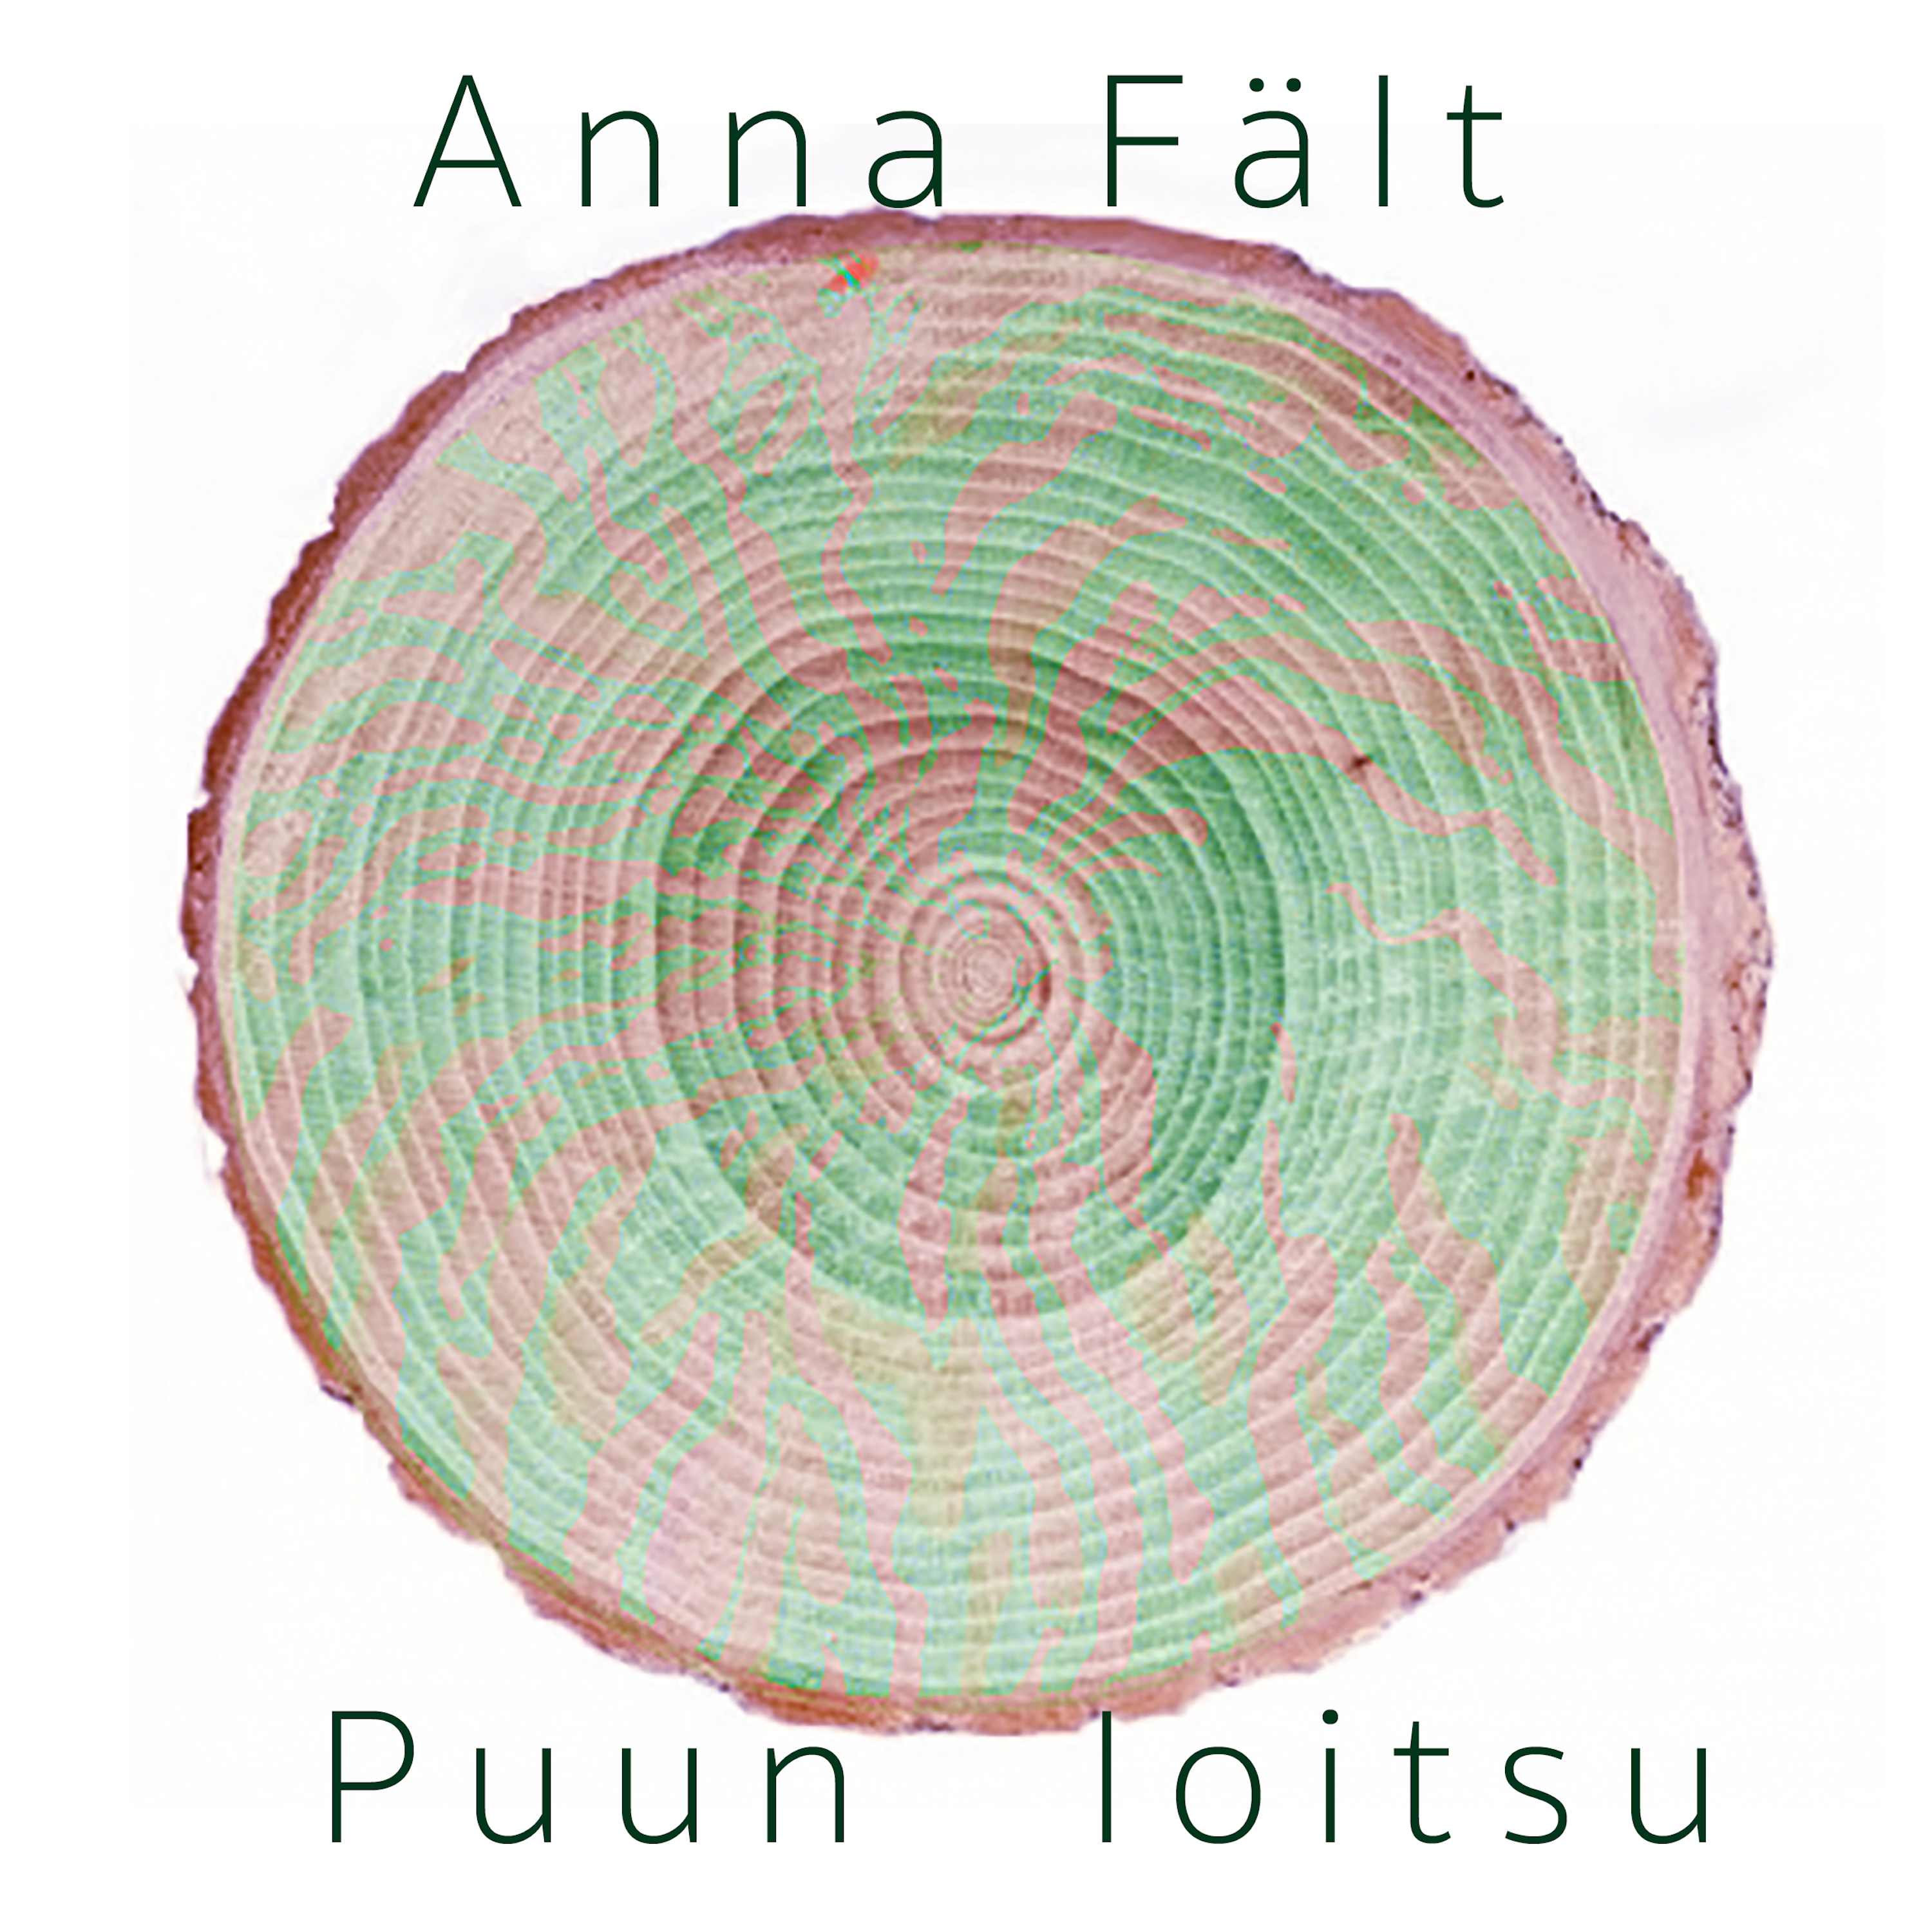 Anna Fält – Puun Loitsu (Single). Available at your favourite download or streaming service. monophon © 2018 (MPHSGL003)